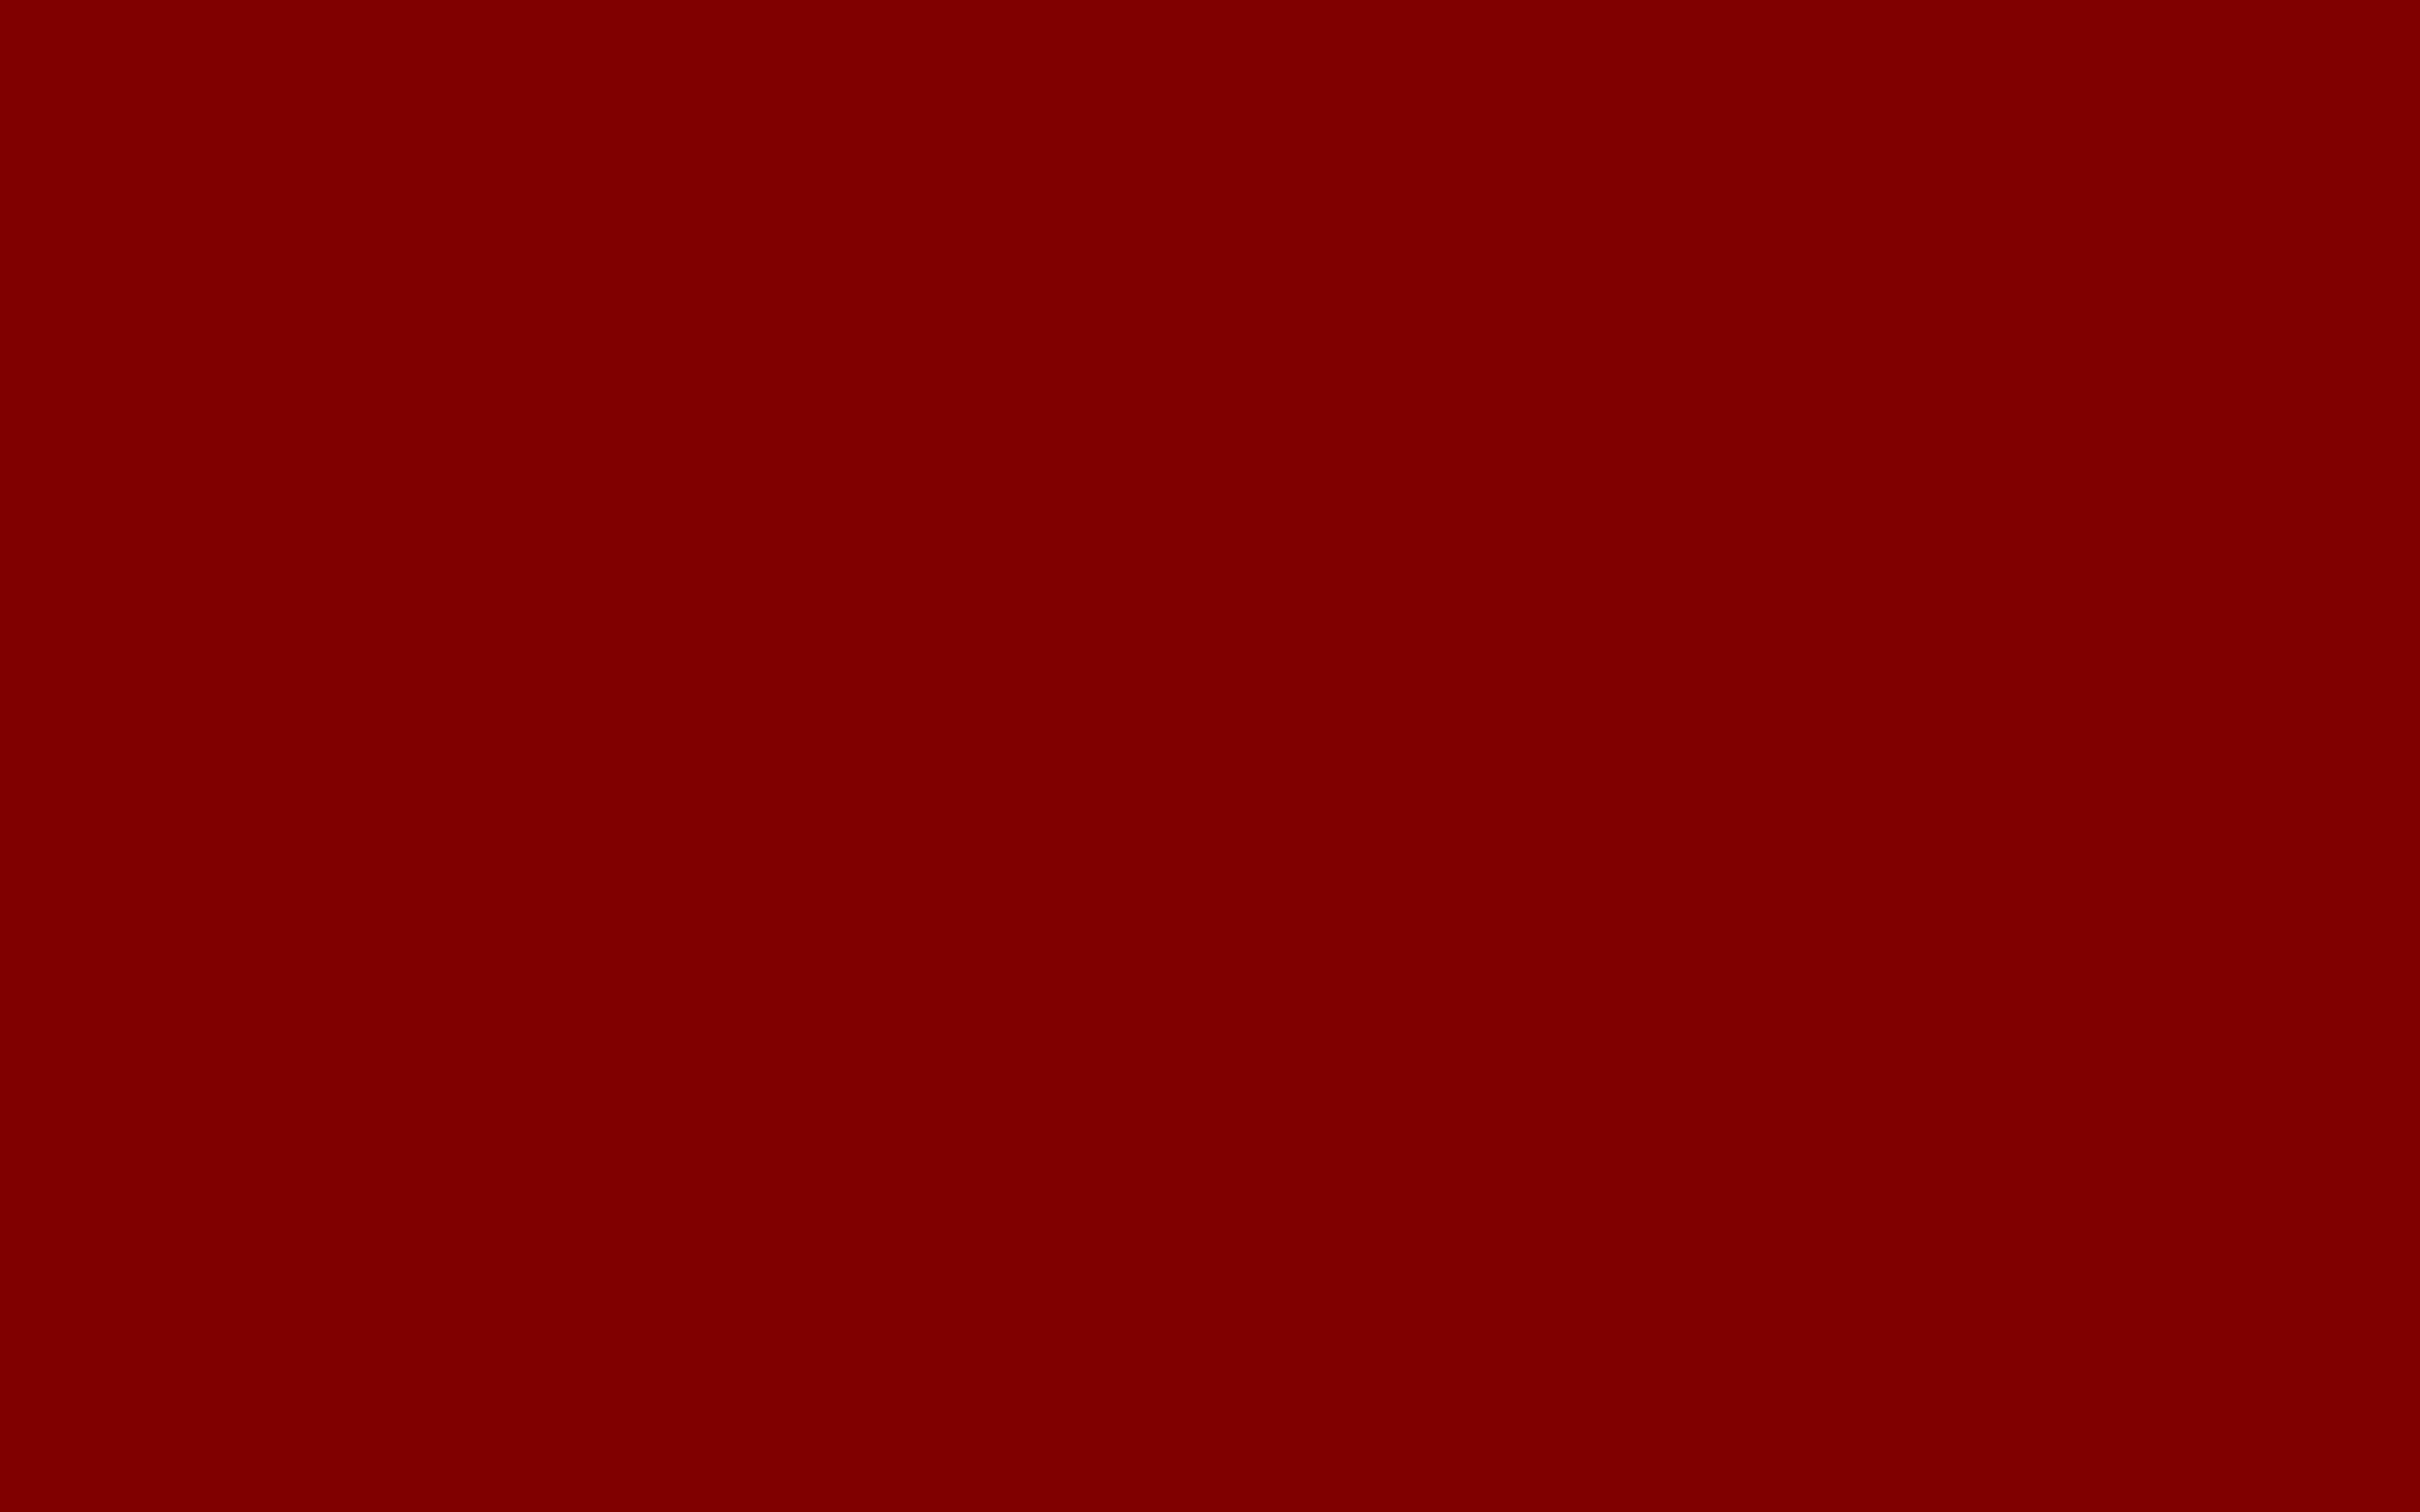 maroon color background 56 images getwallpapers com